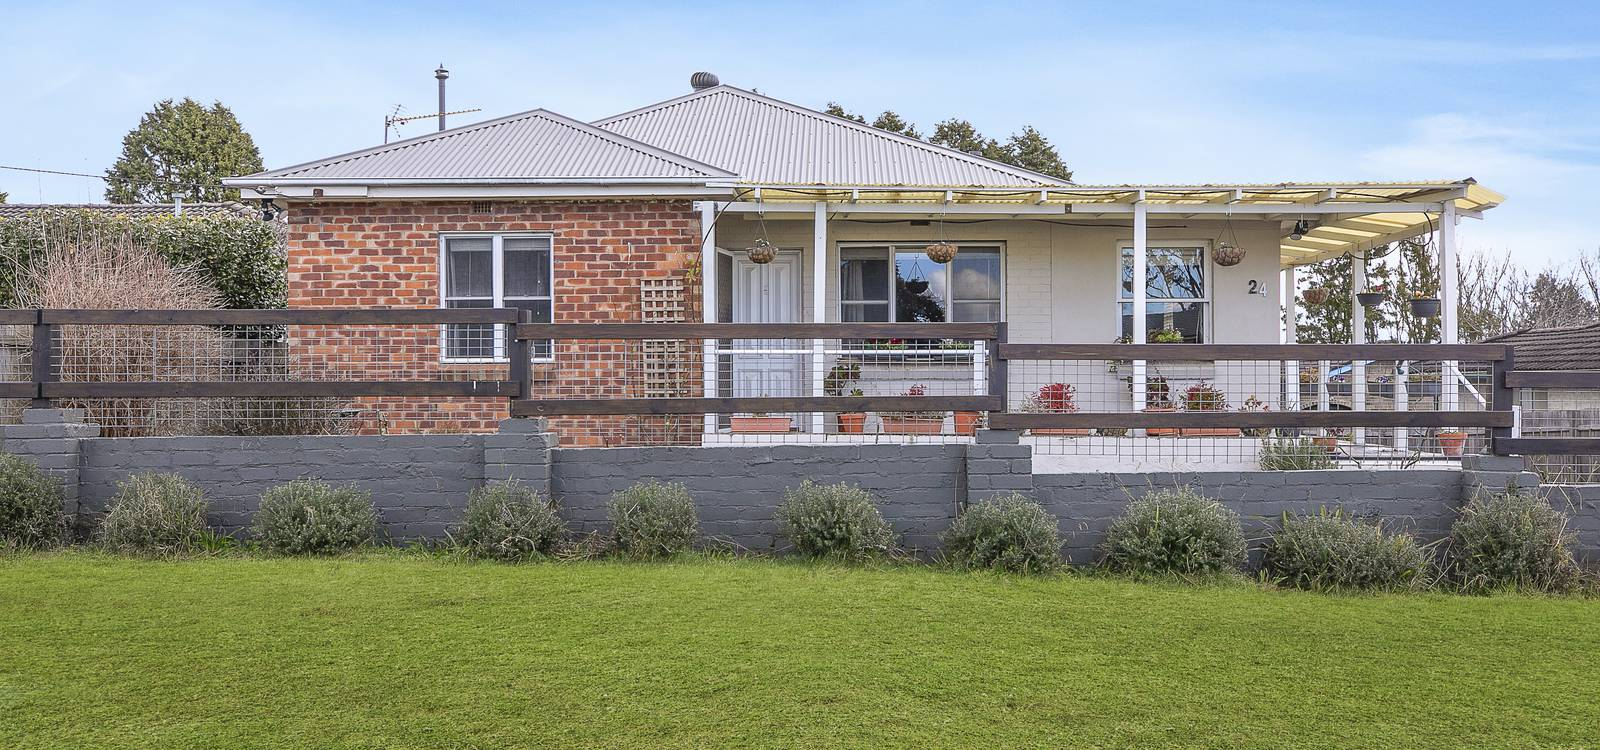 24 Beaconsfield Road MOSS VALE, NSW 2577 - photo 1